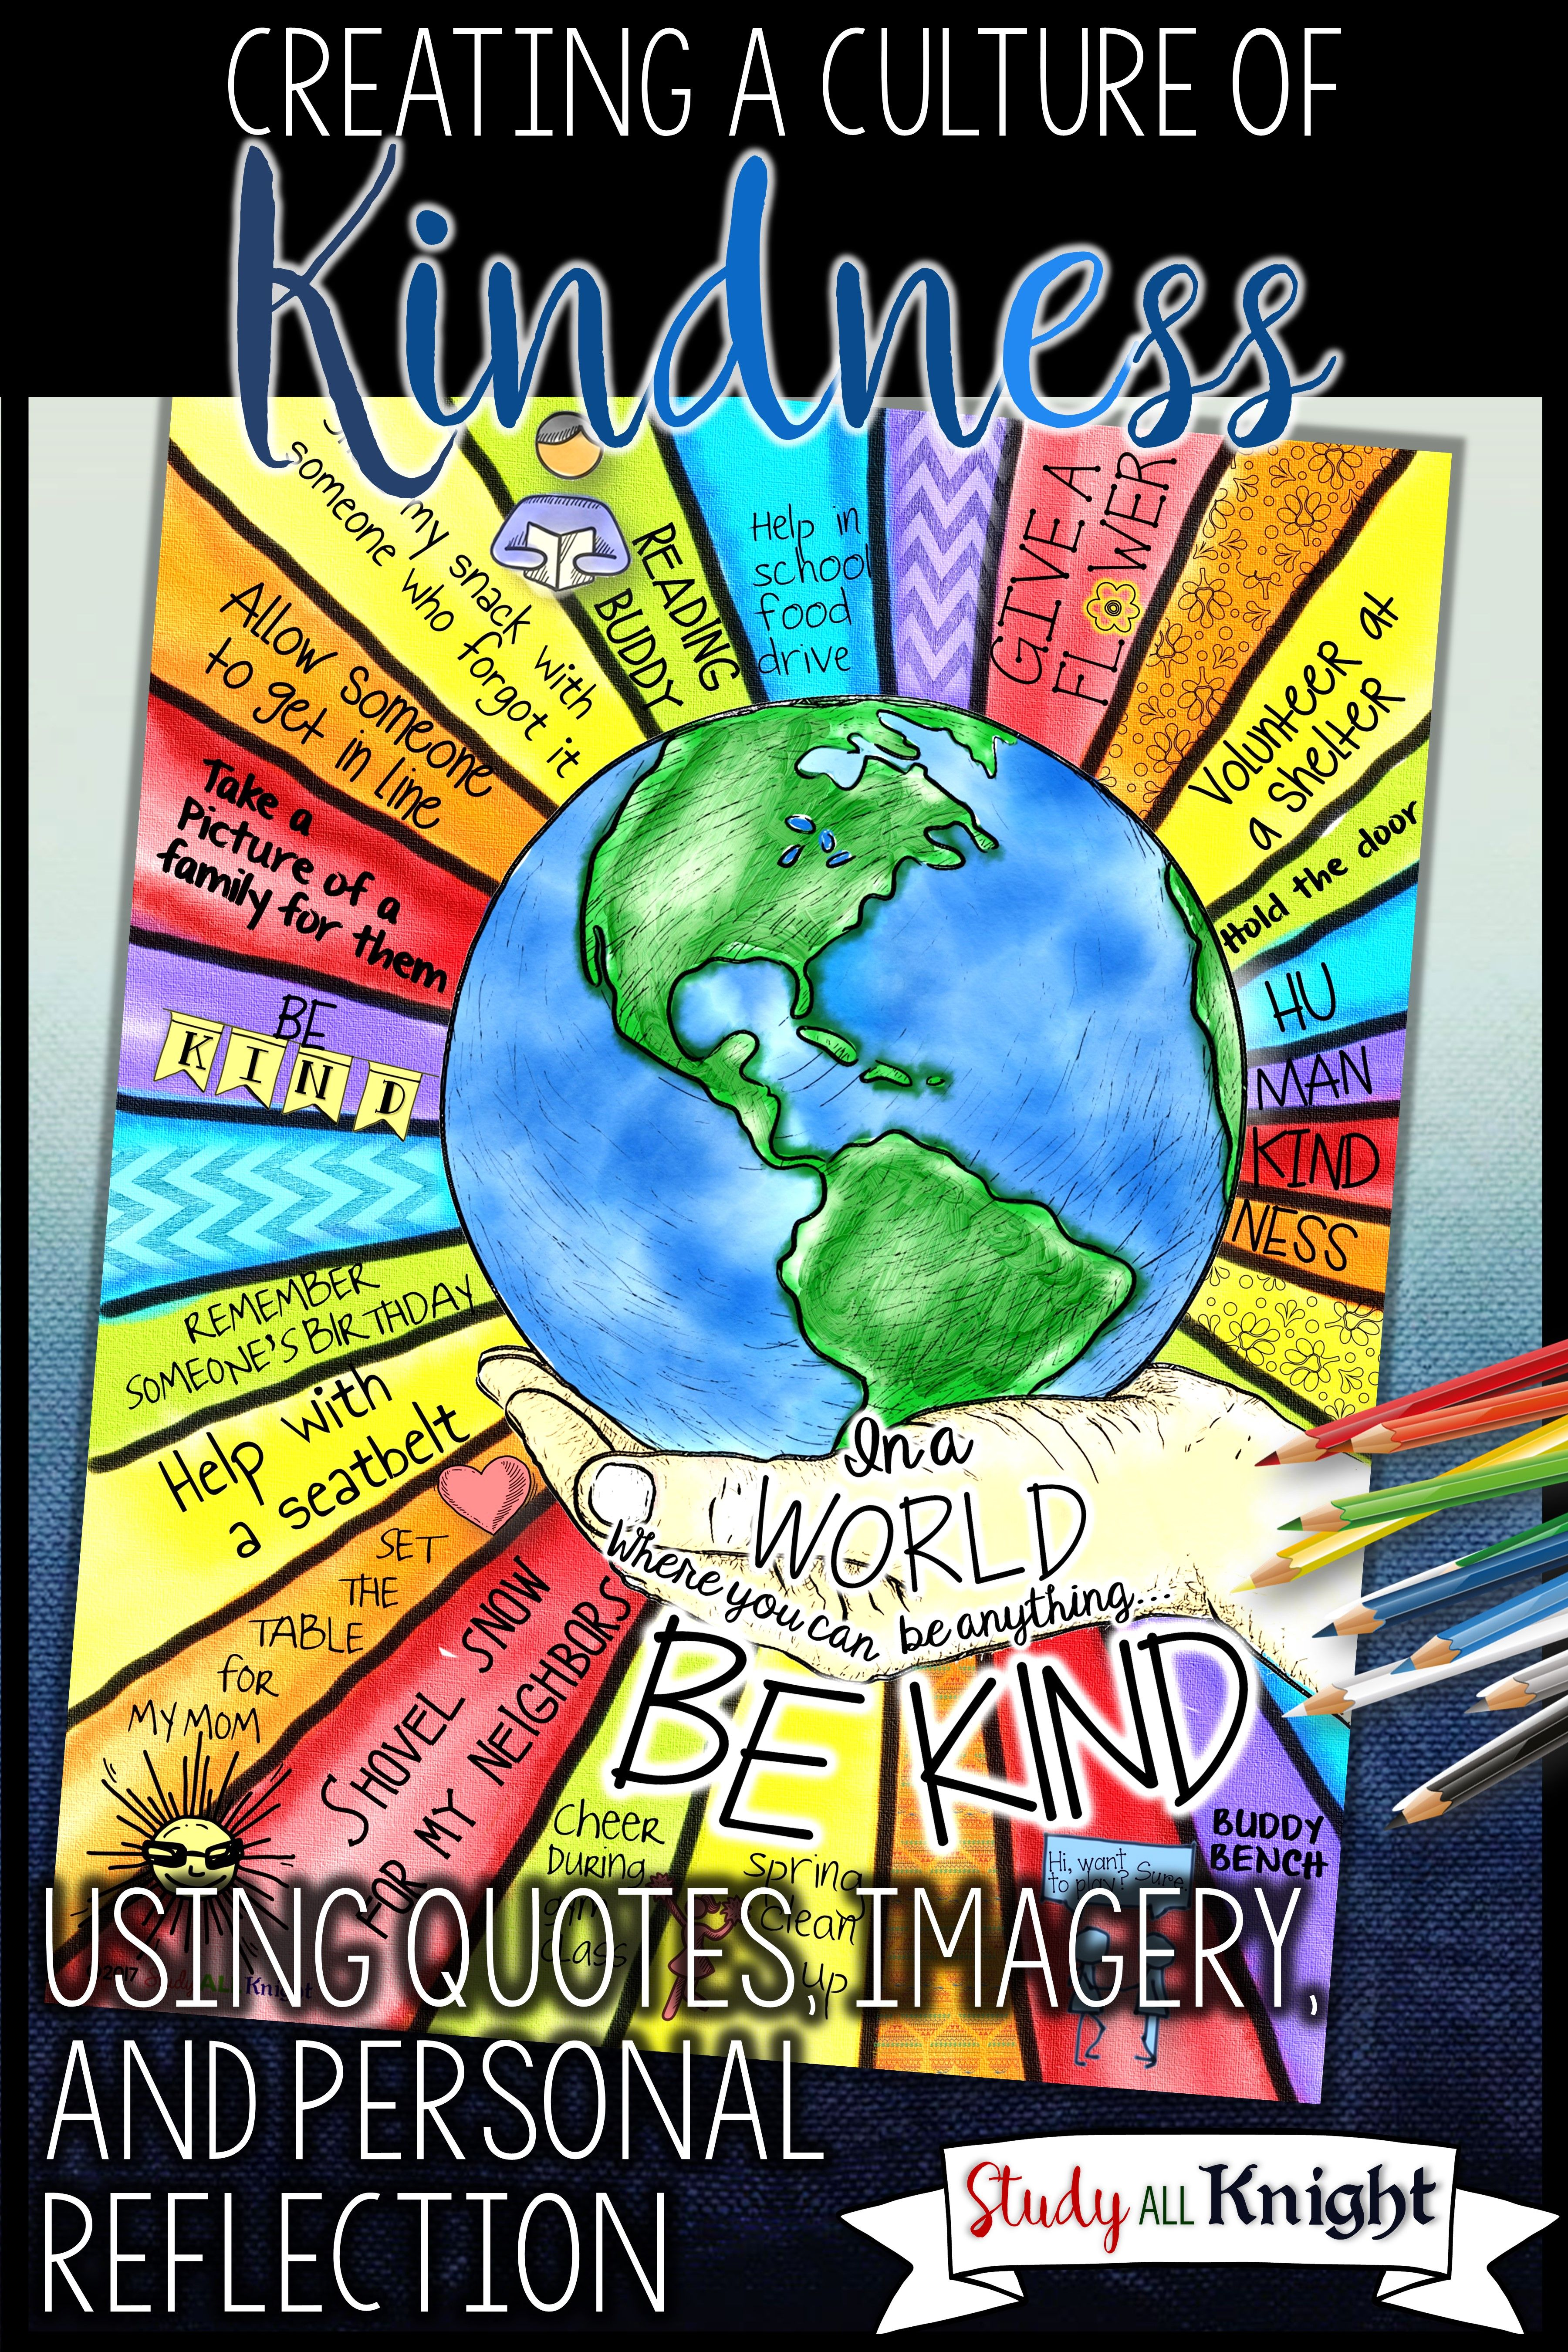 Creating a kindness culture in the classroom can be easy with this creating a kindness culture using quotes imagery and reflection study all knight biocorpaavc Gallery